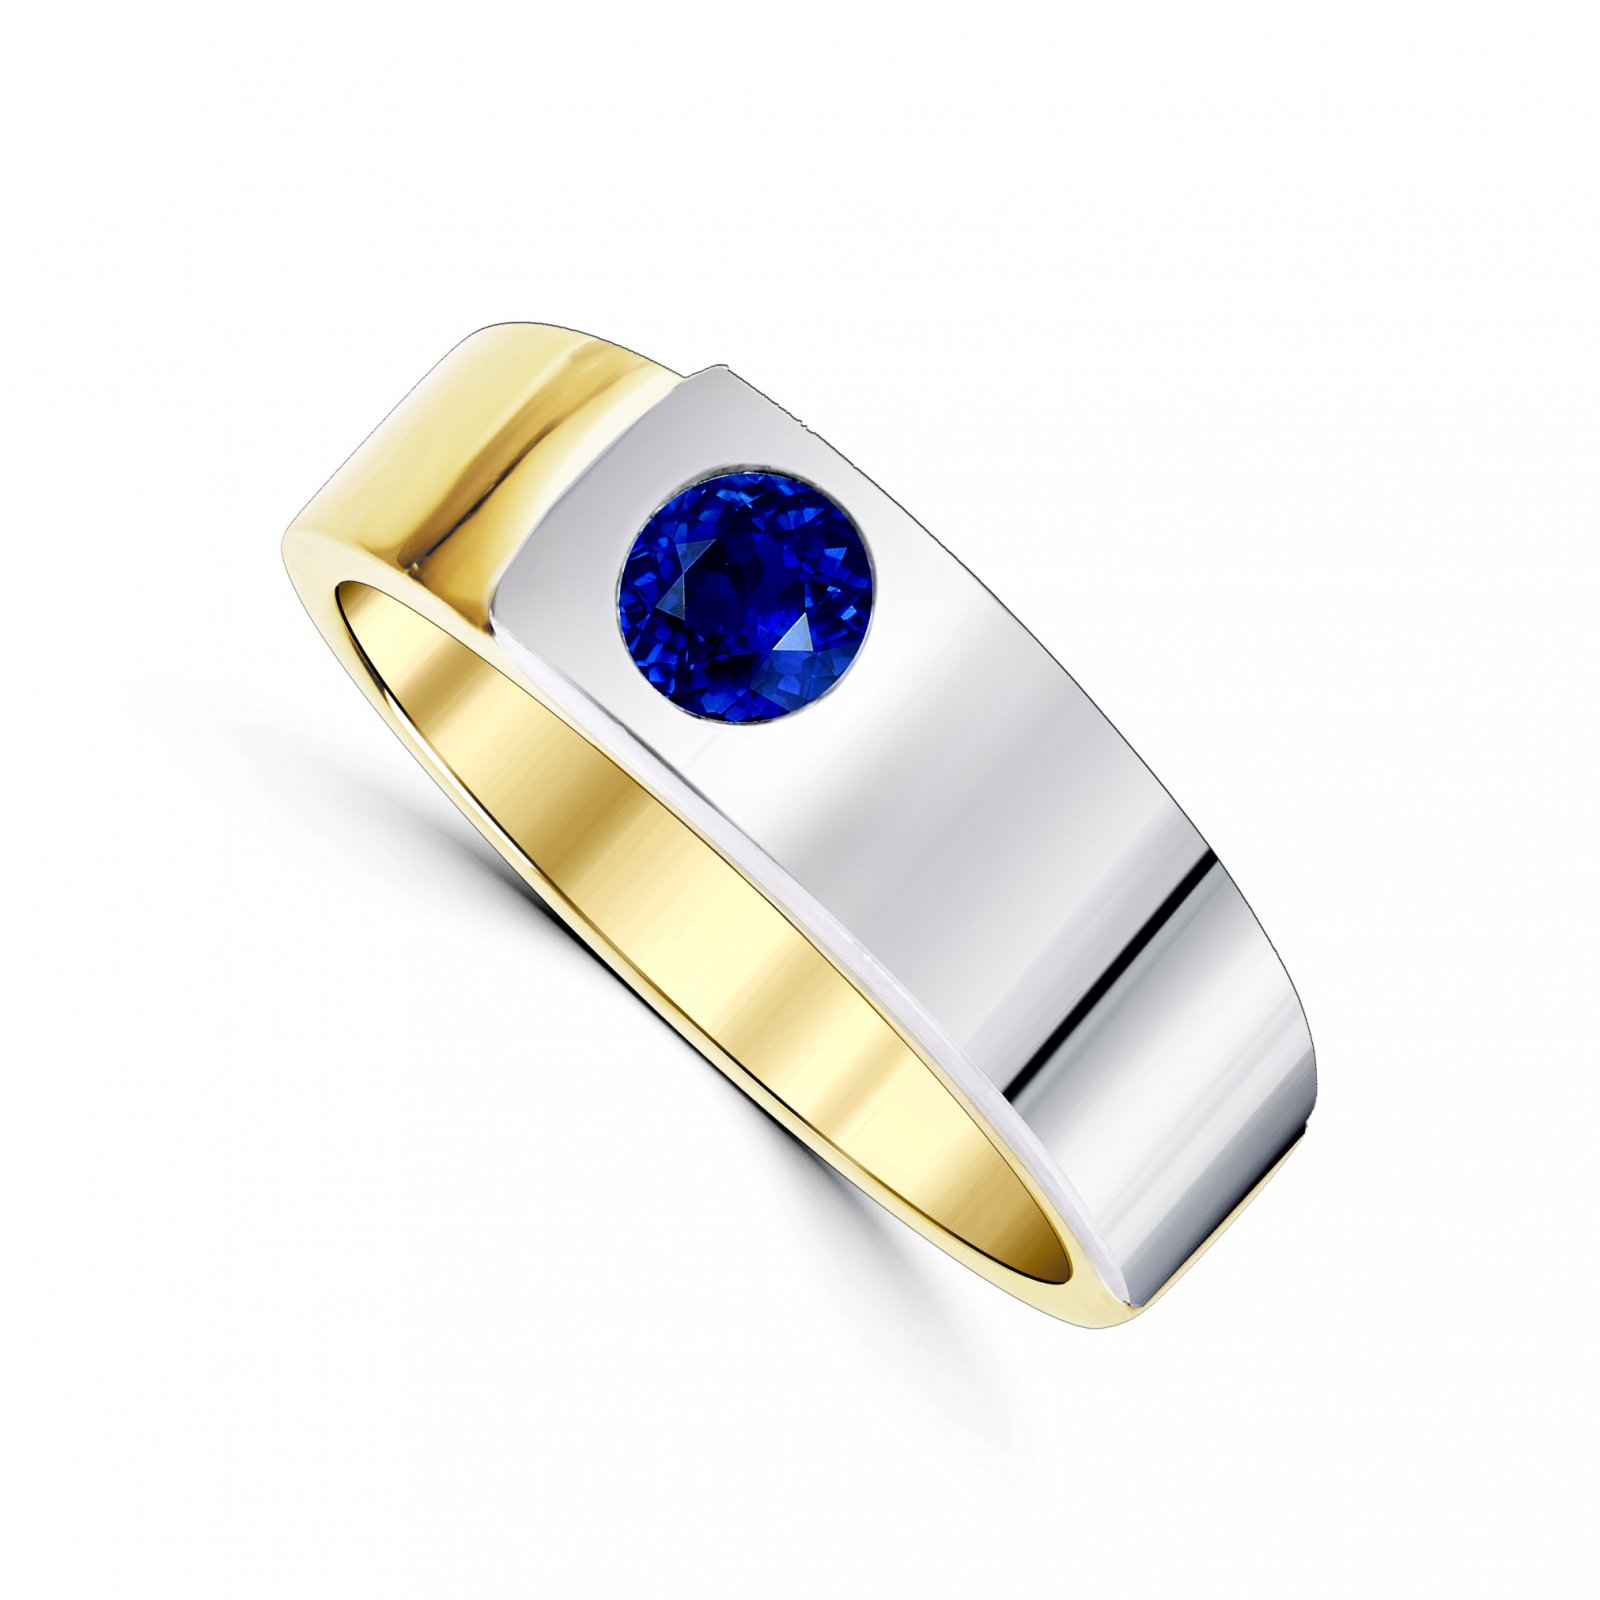 Men's Custom 0.86 Total Carat Weight  Round Sapphire Ring Set in Two Tone Yellow and White Gold